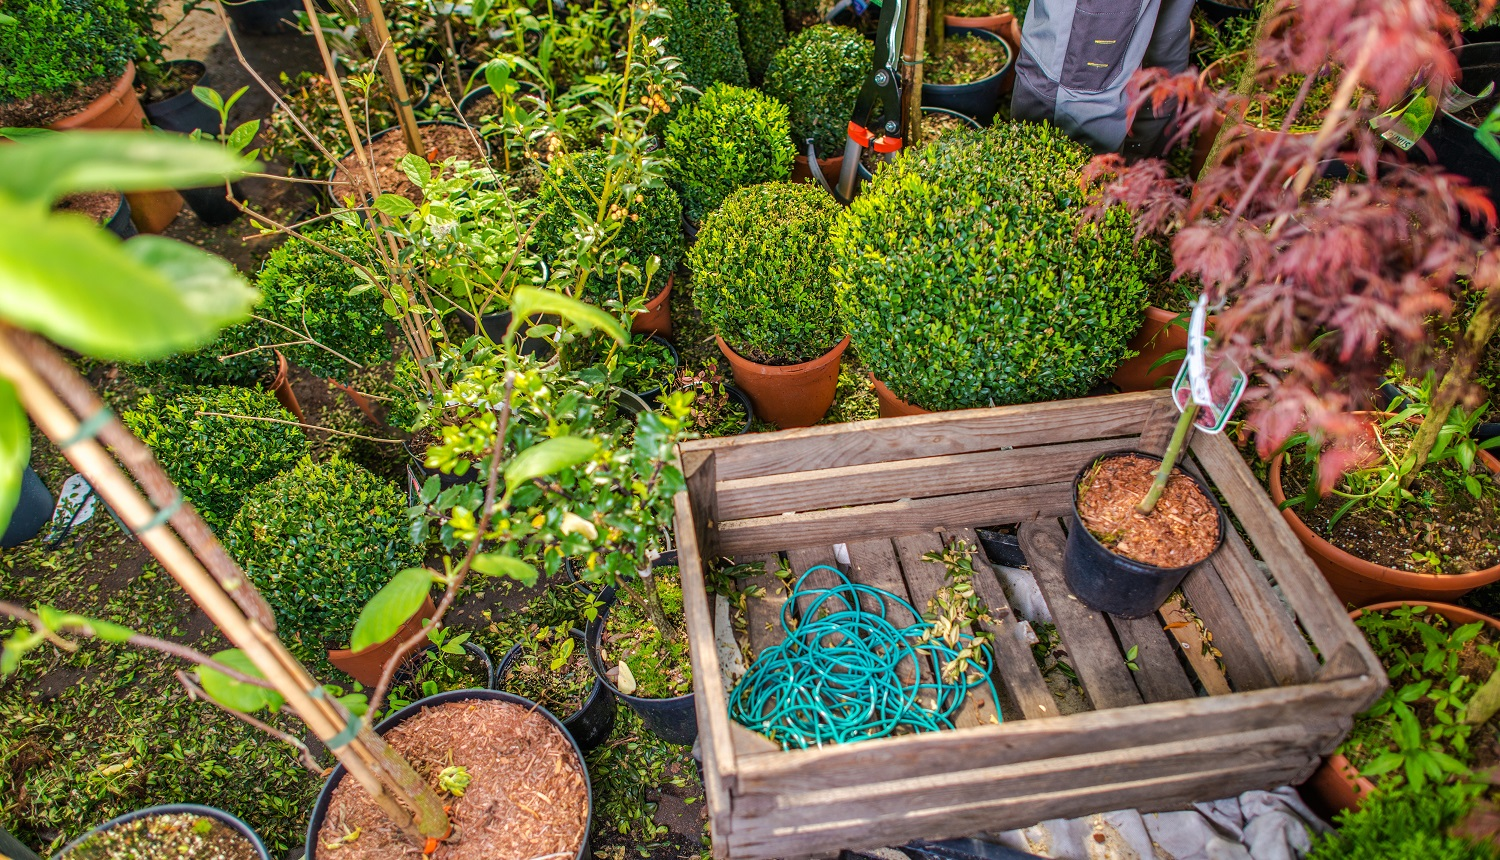 Landscaping Business Storage with Many Garden Decorative Plants, Wooden Crate and Tools